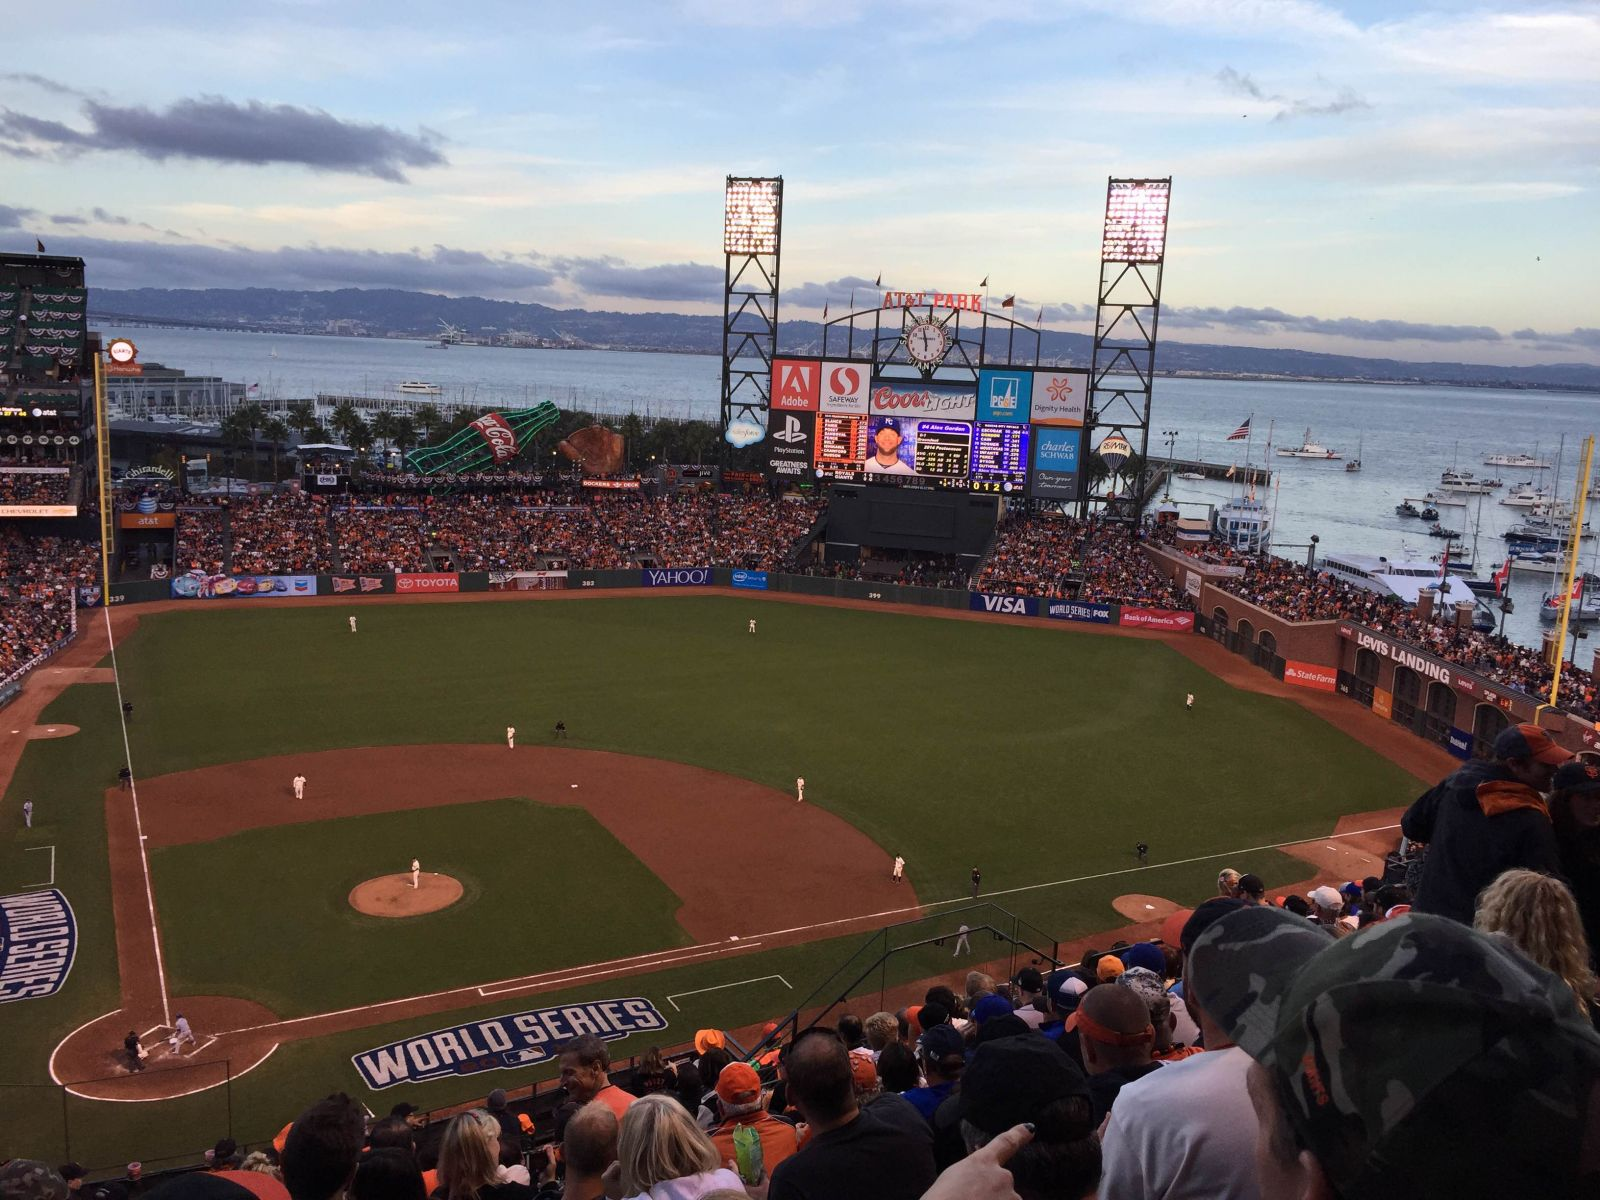 bb2ae37afce4 Where to Sit For a Baseball Game - A Comprehensive Guide ...